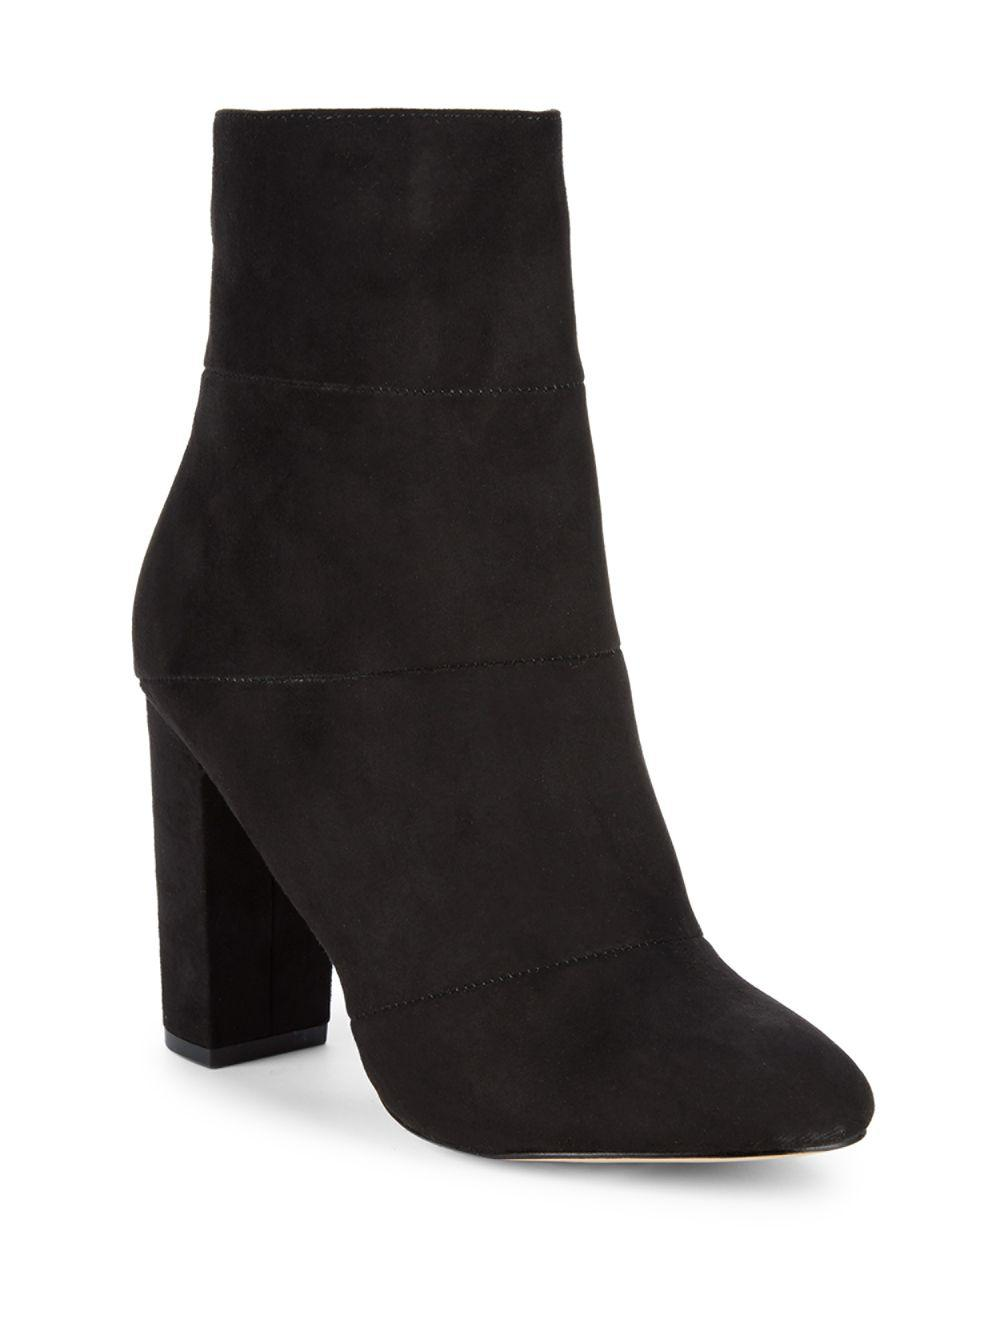 5e19e4a7193b Lyst - BCBGeneration Coral Microsuede Ankle Booties in Black